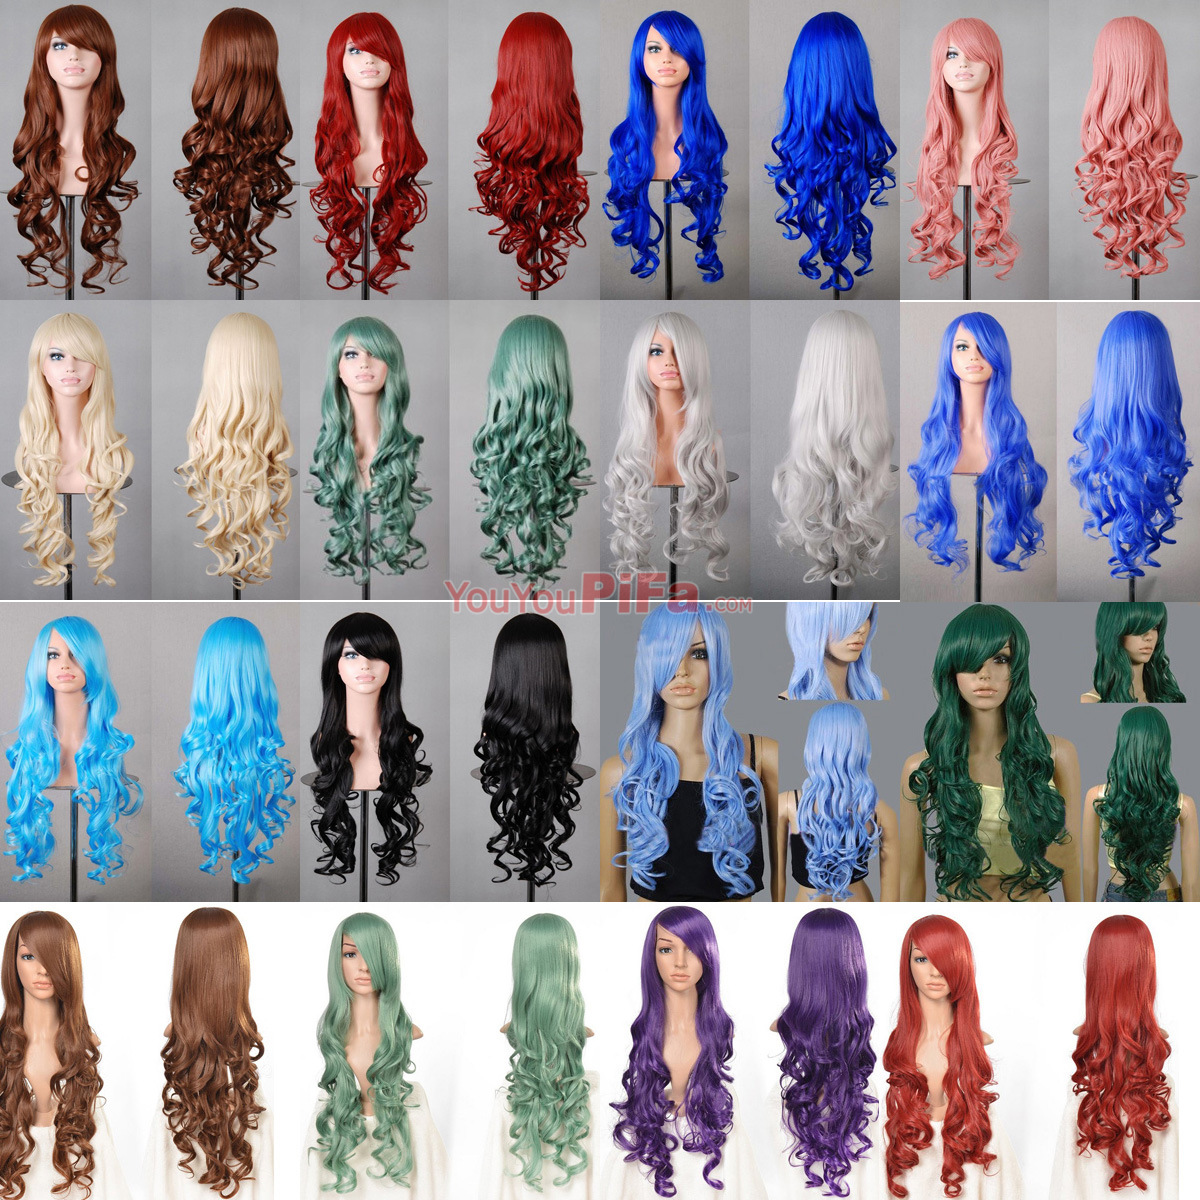 Парик   Anime Cosplay Wig Multicolor 80CM Long Curly Hair 2015 free shipping cosplay hair wig v miku markkaa black double horsetail cosplay wig 042b hot sale